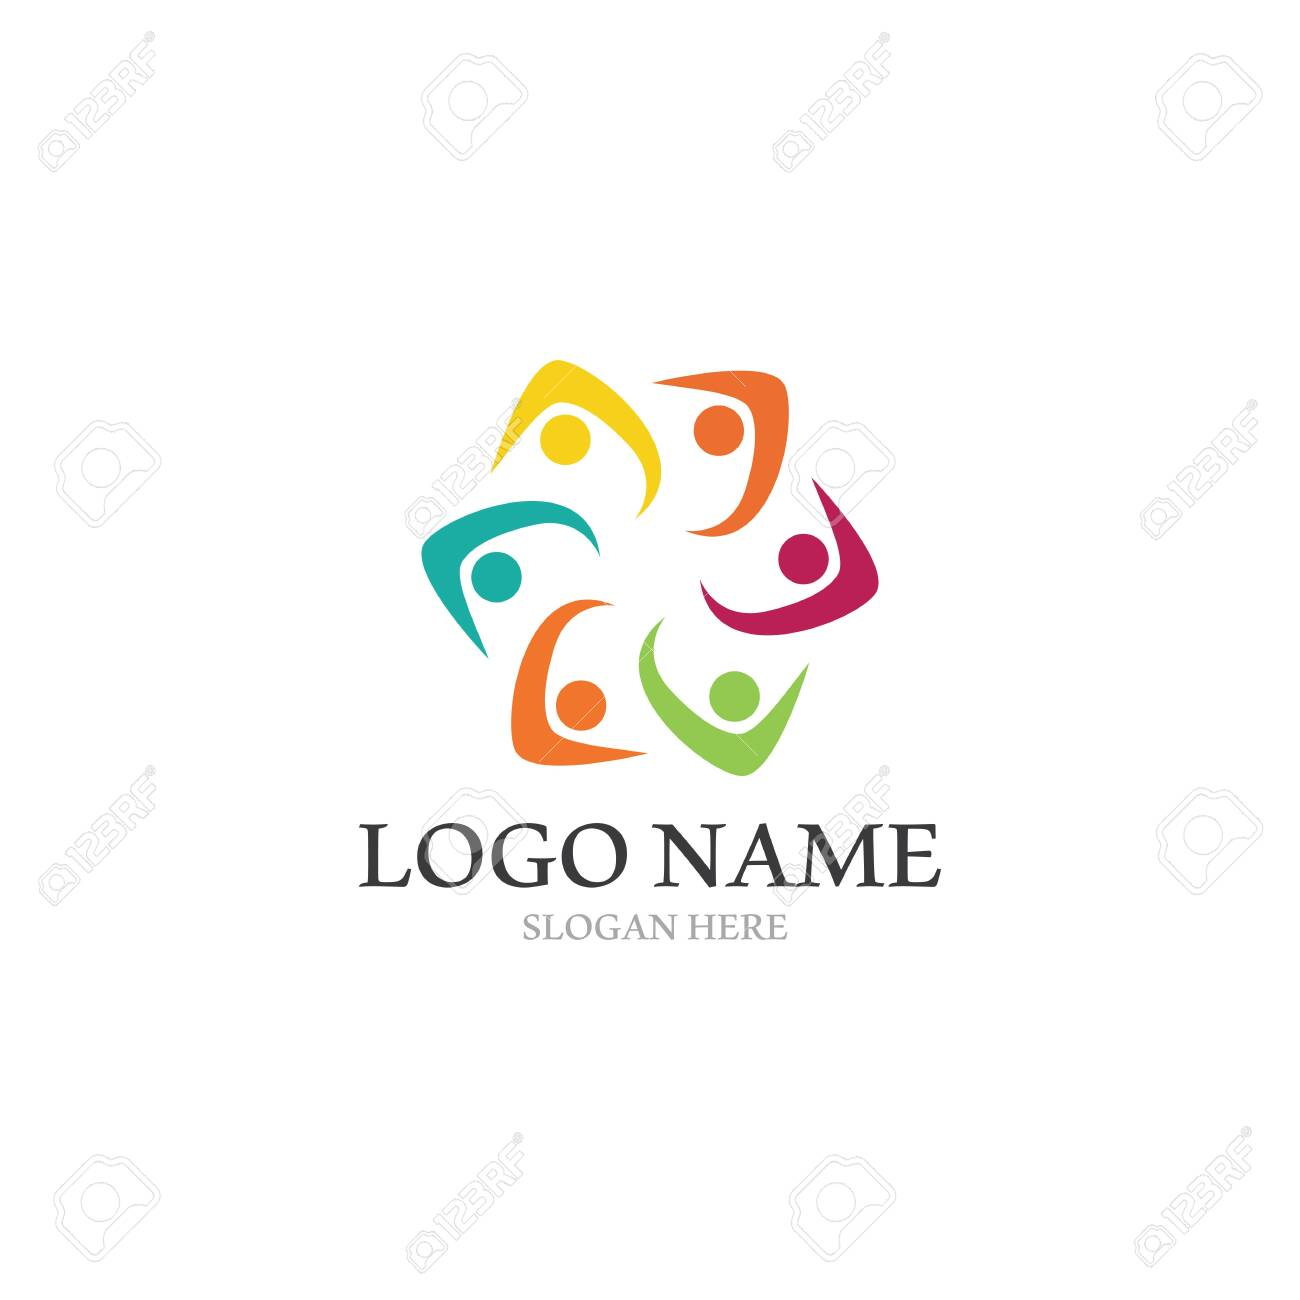 Adoption and community care Logo template vector icon - 129622238